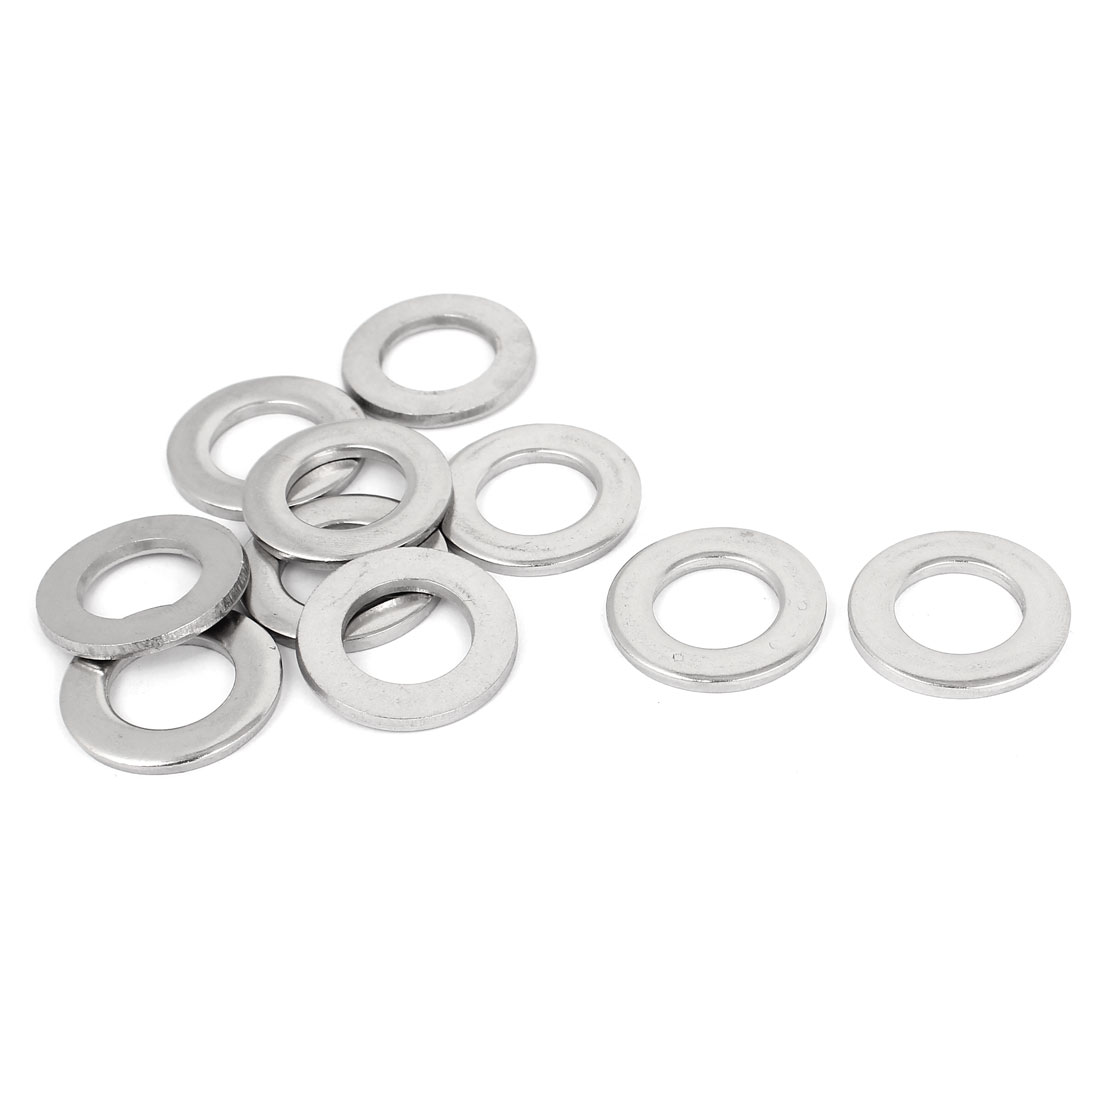 "10pcs Silver Tone 304 Stainless Steel Flat Washer 5/8"" for Screws Bolts"